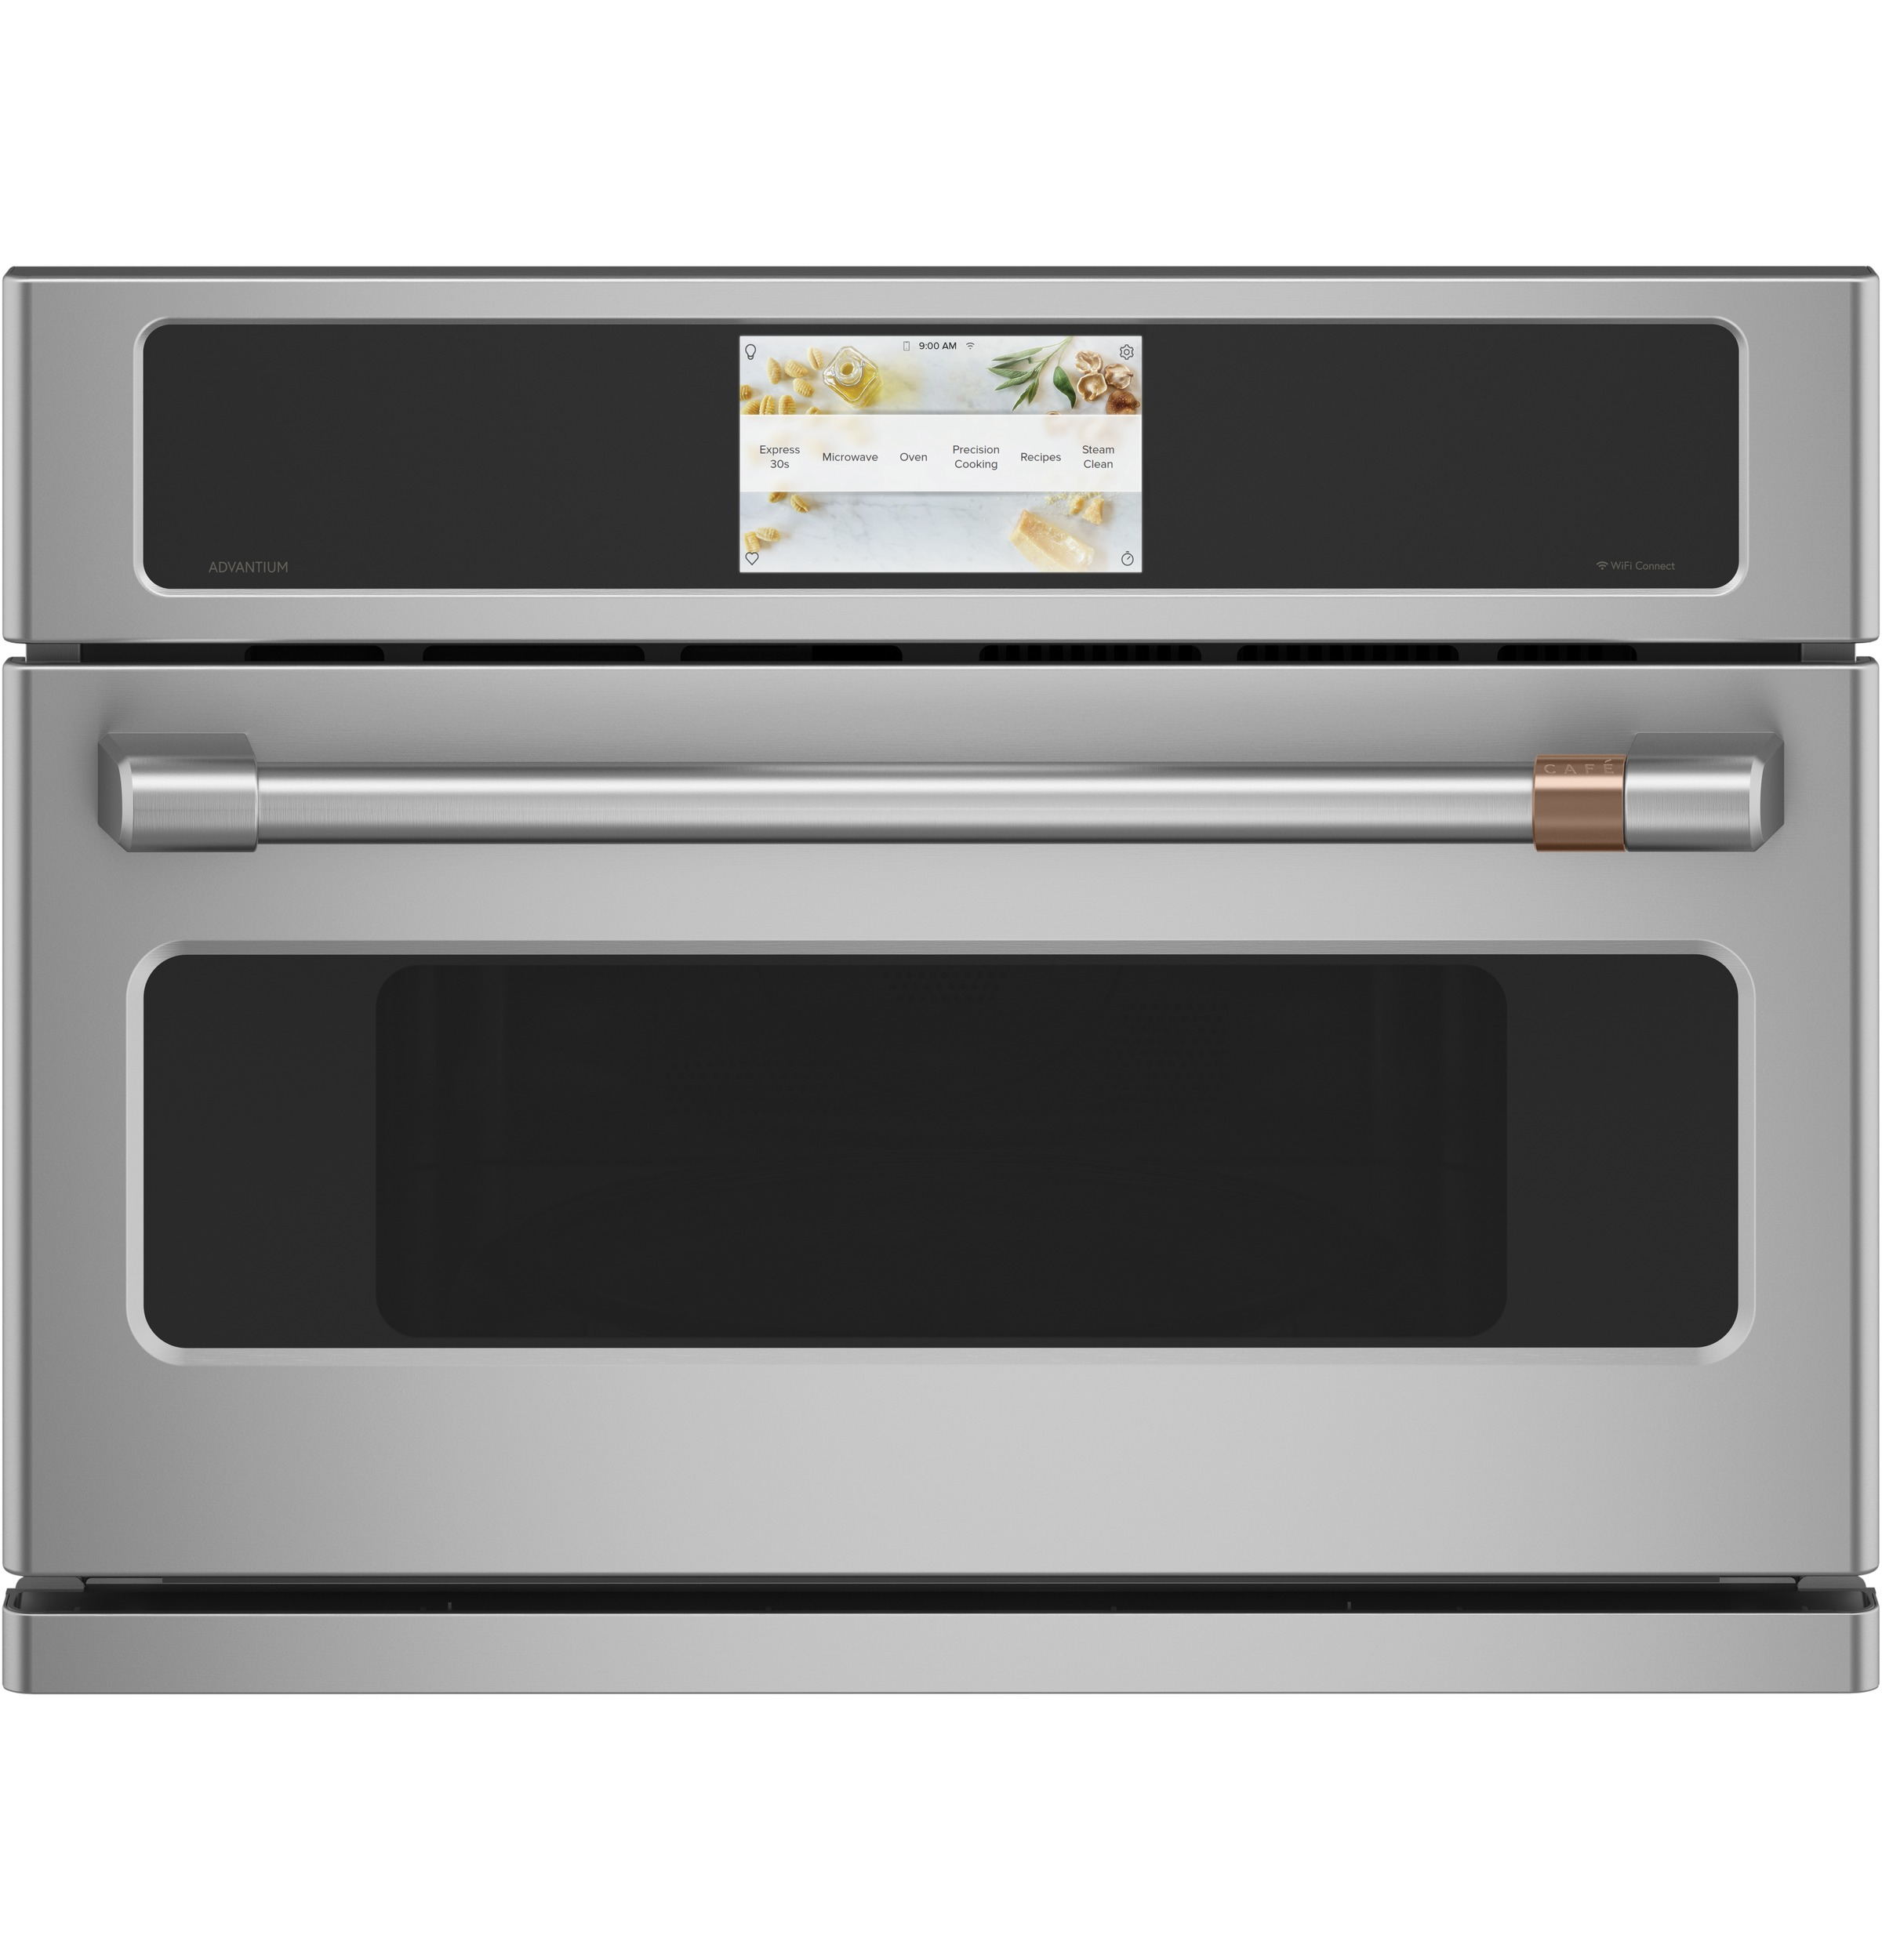 "Cafe Café™ 27"" Smart Five in One Oven with 120V Advantium® Technology"